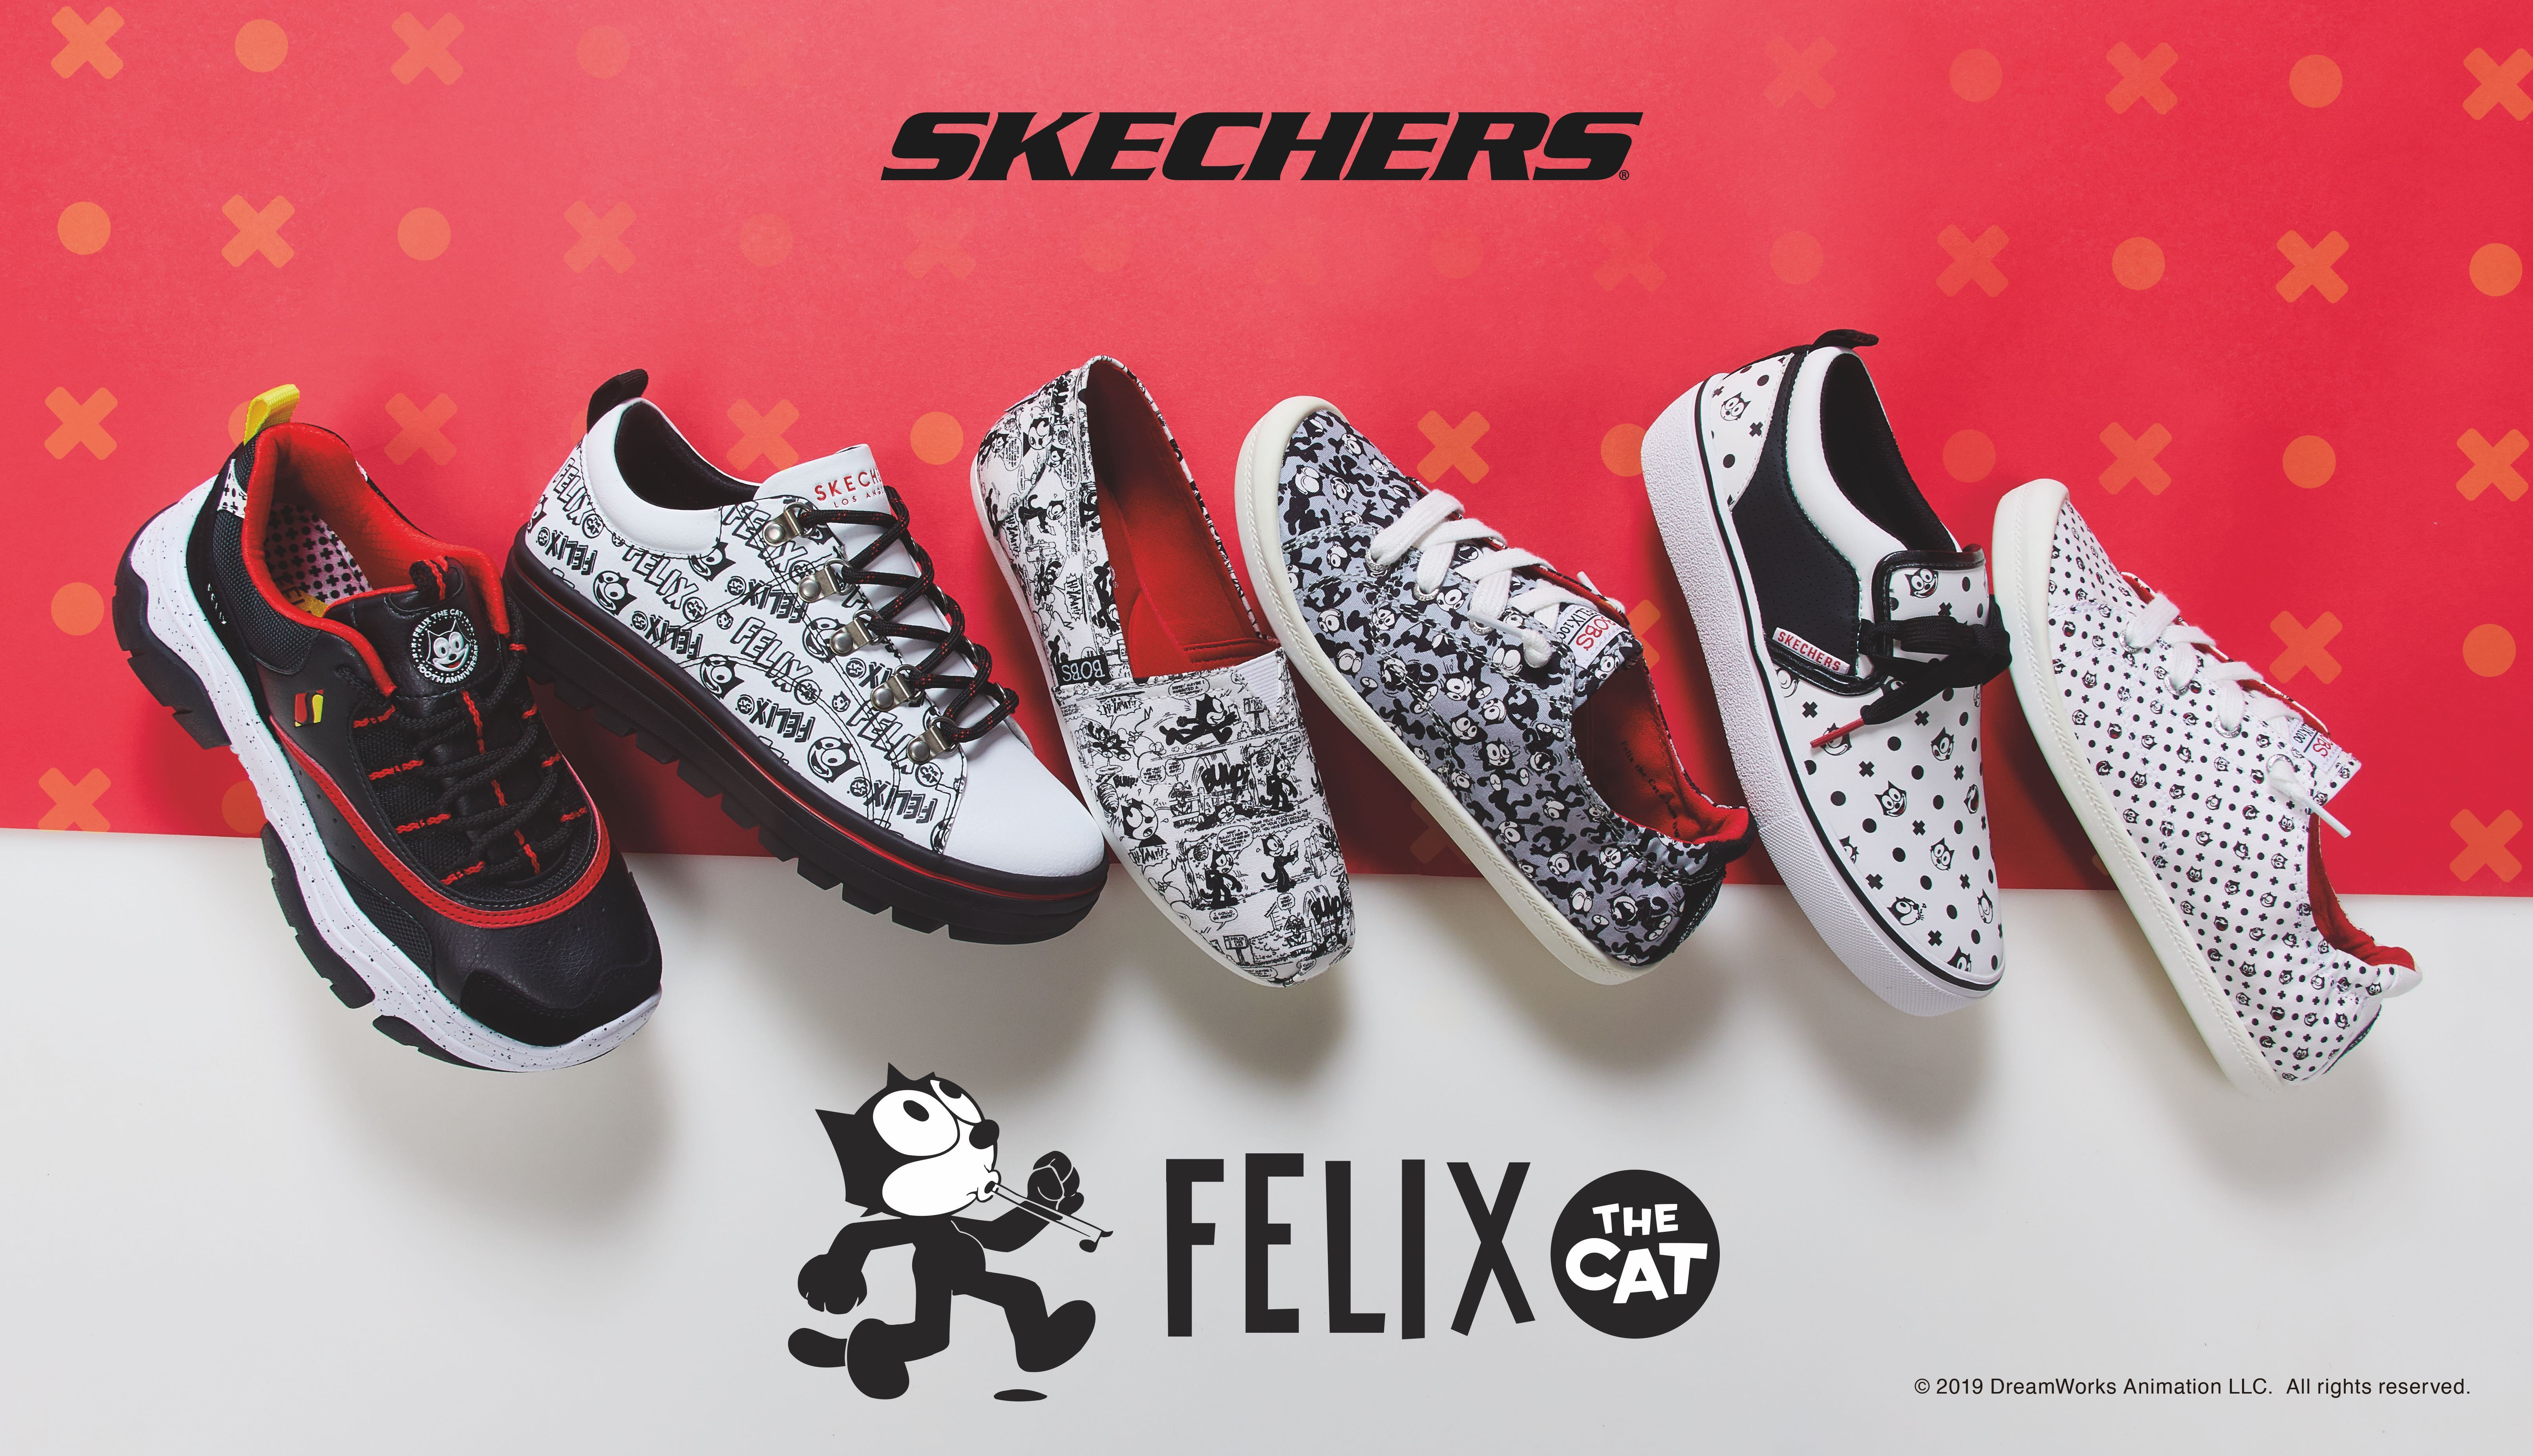 skechers lifestyle brand shoes